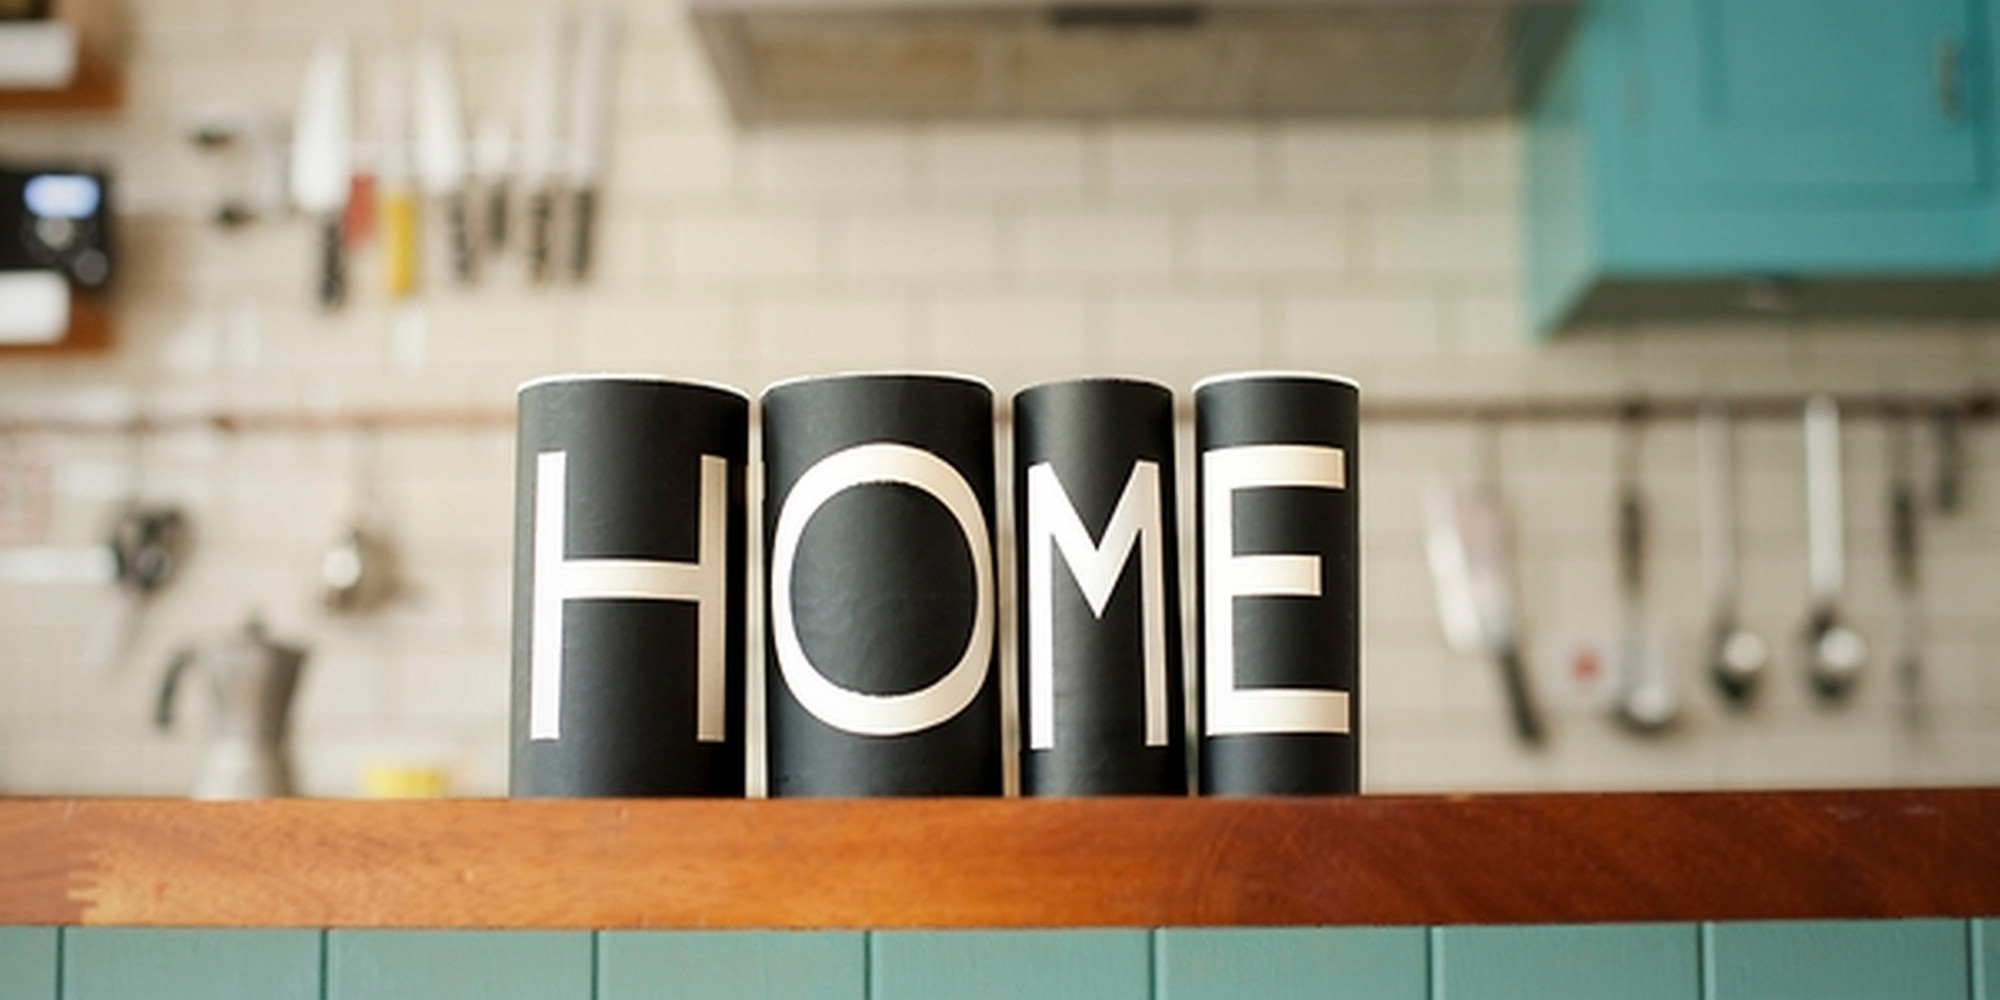 7 things that make a house a home that can 39 t necessarily - Things to consider when building a house ...